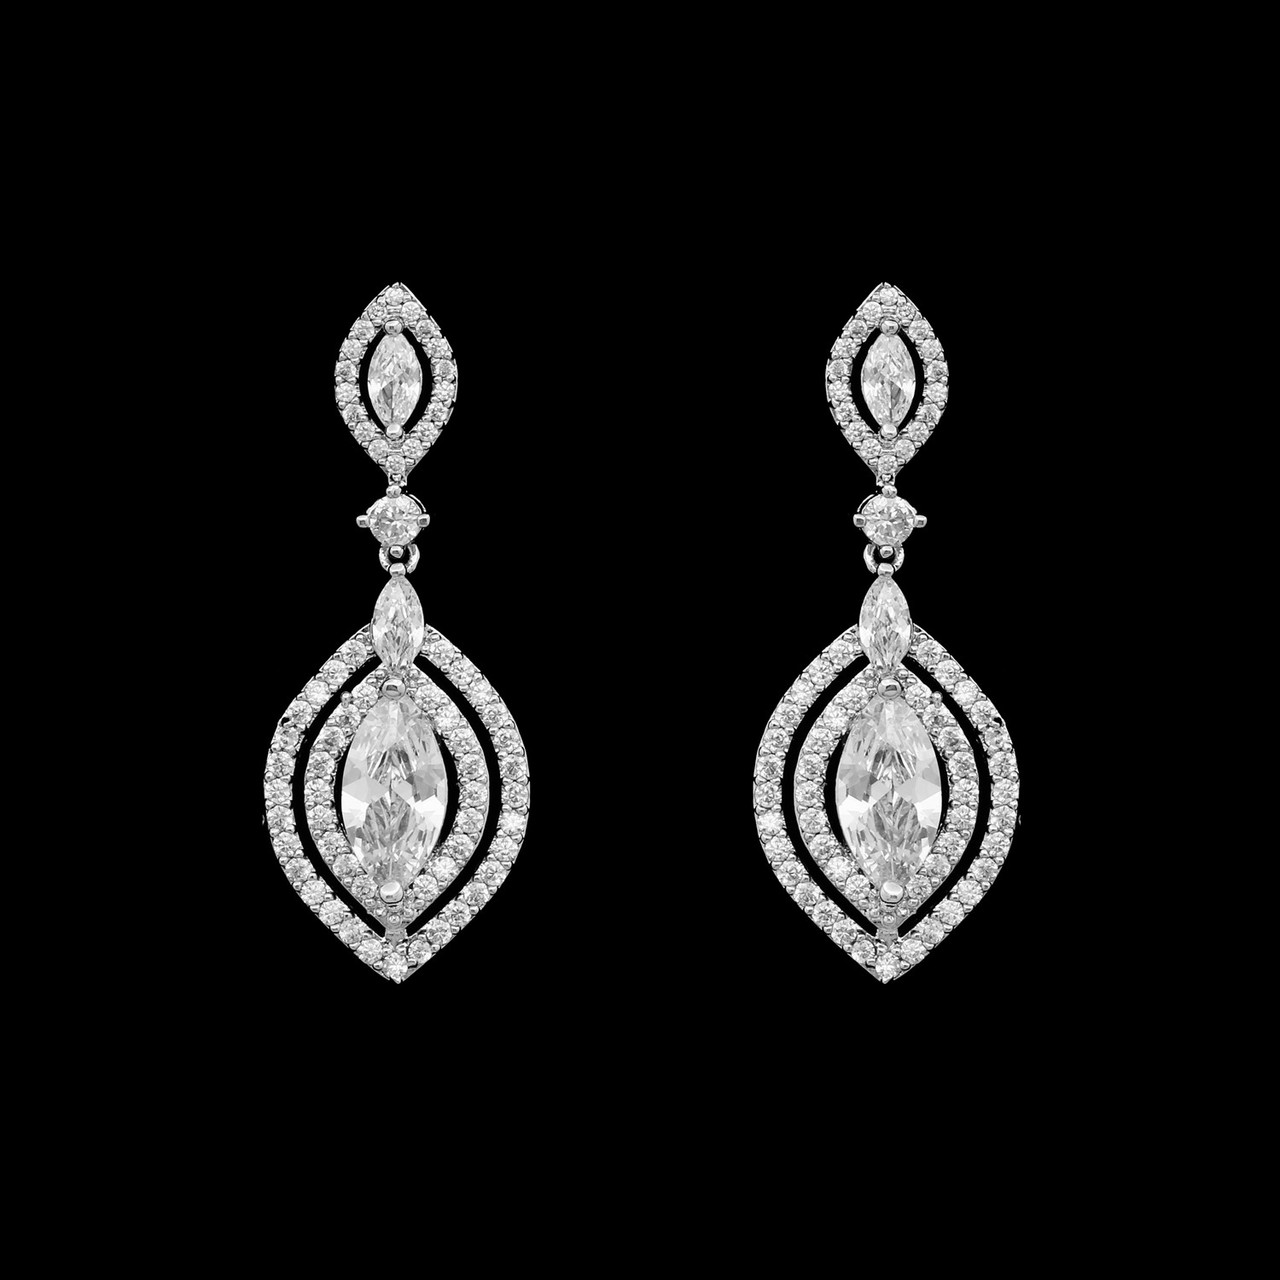 Formal Cubic Zirconia Earrings for Bridesmaids and Brides